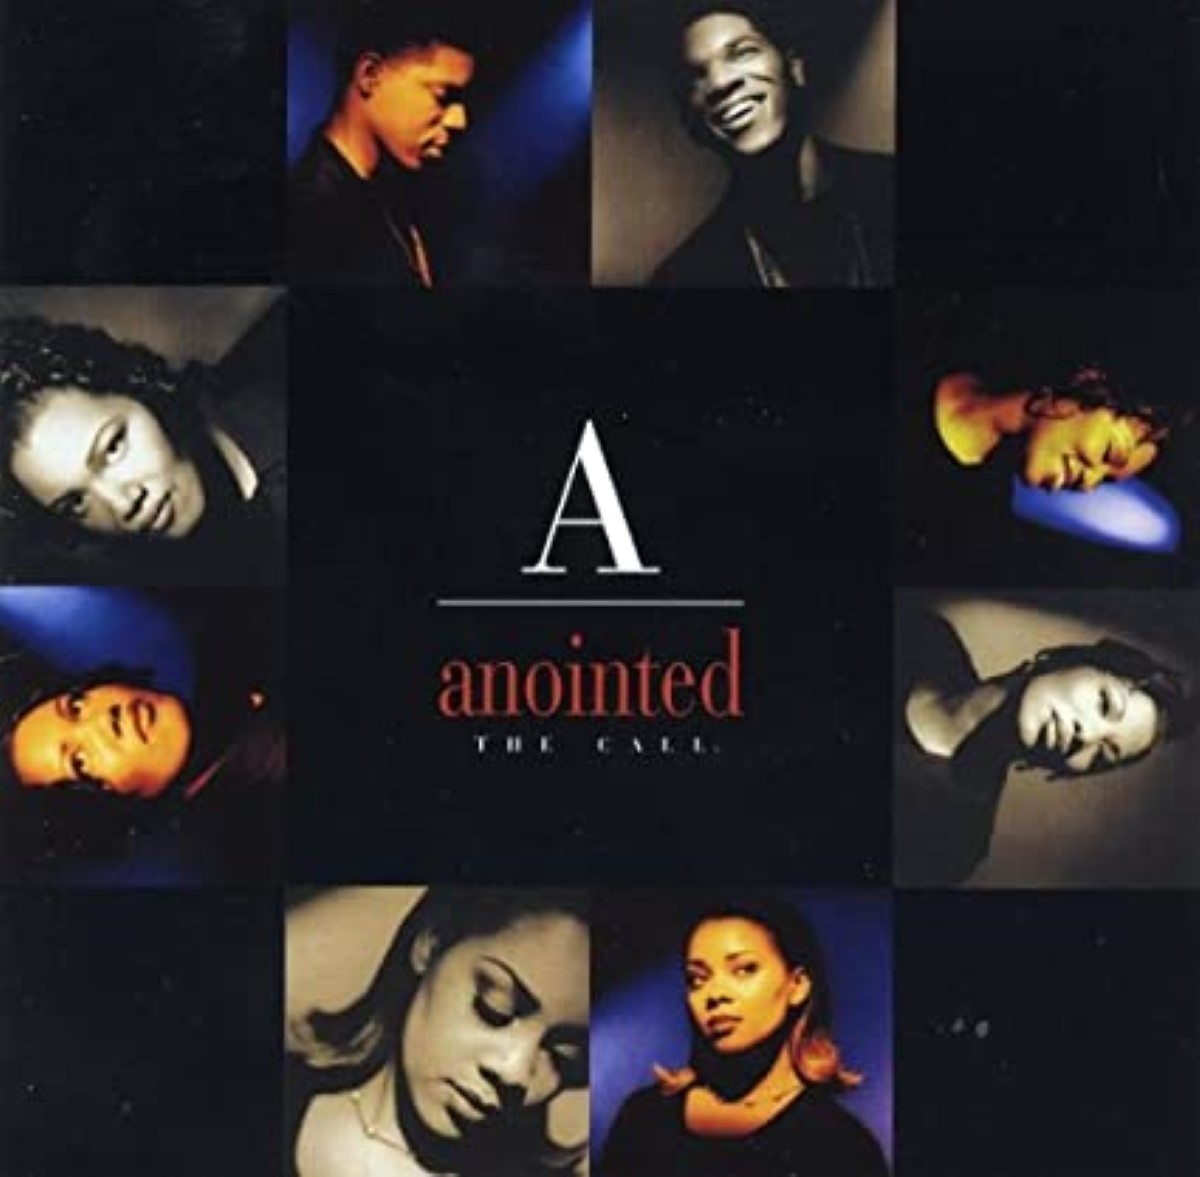 Call by Anointed Cd